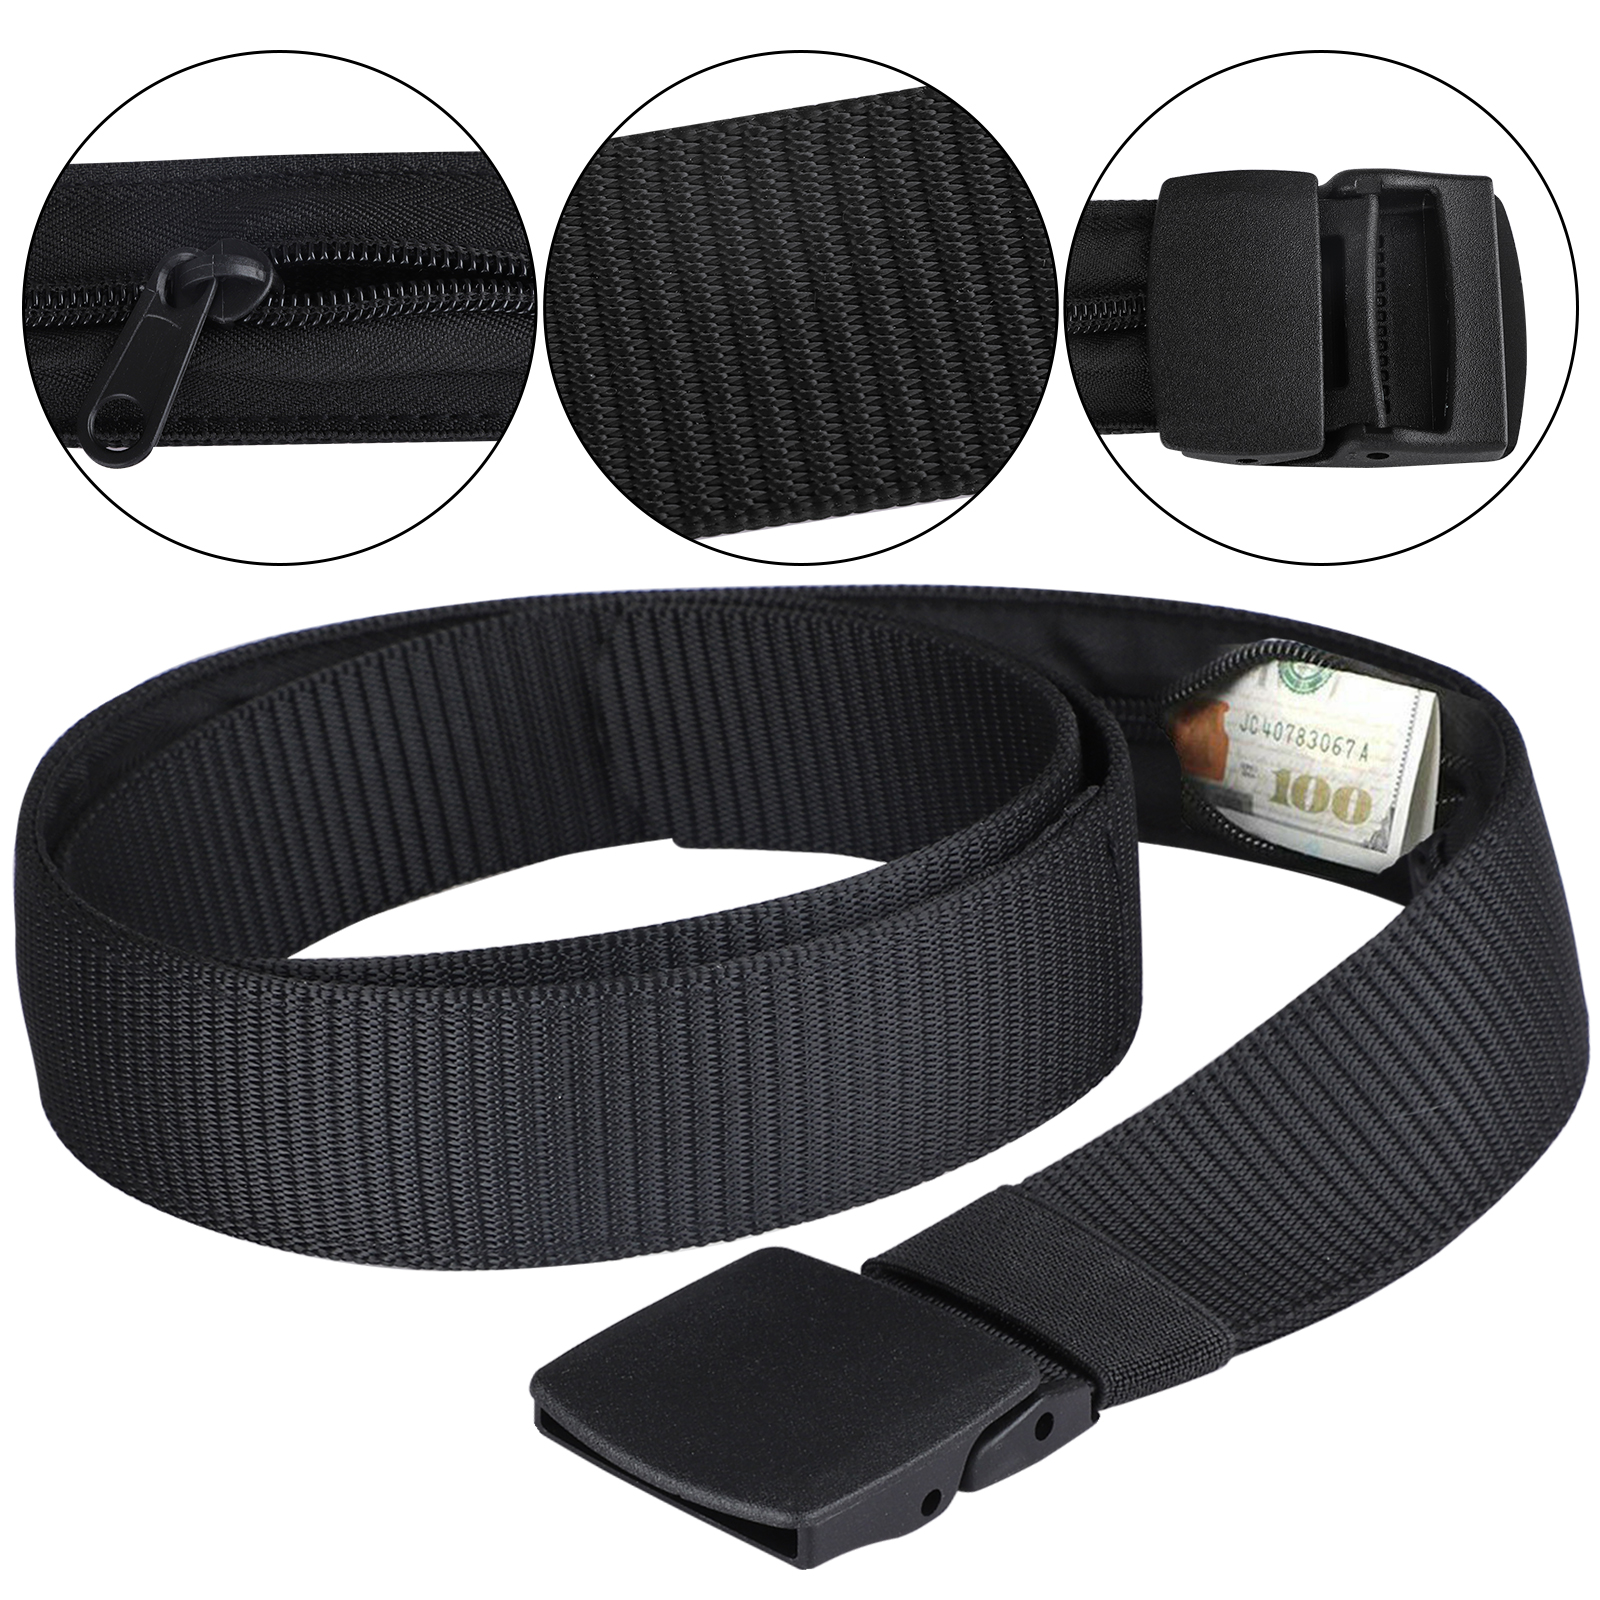 Travel Security Belt with Hidden Money Pocket Travel Anti-Theft Wallet With Non-Metal Buckle